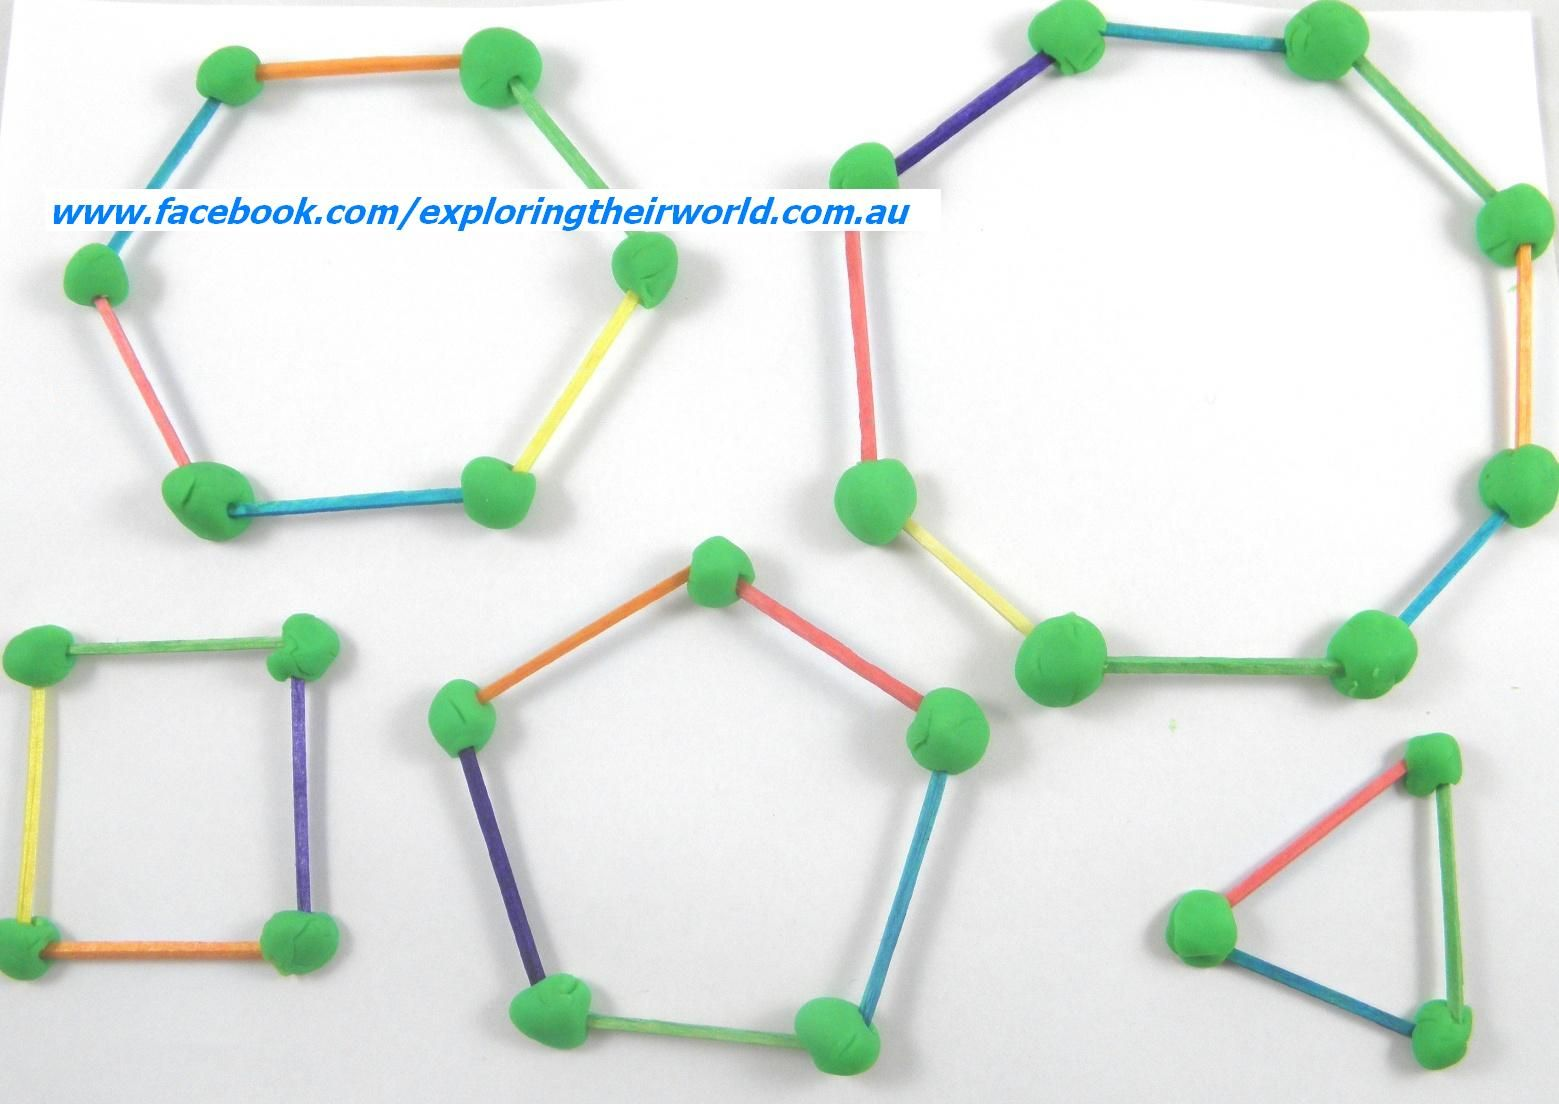 Get The Kids Learning About 2d Polygons With Matchsticks And Playdough Reinforce The Language